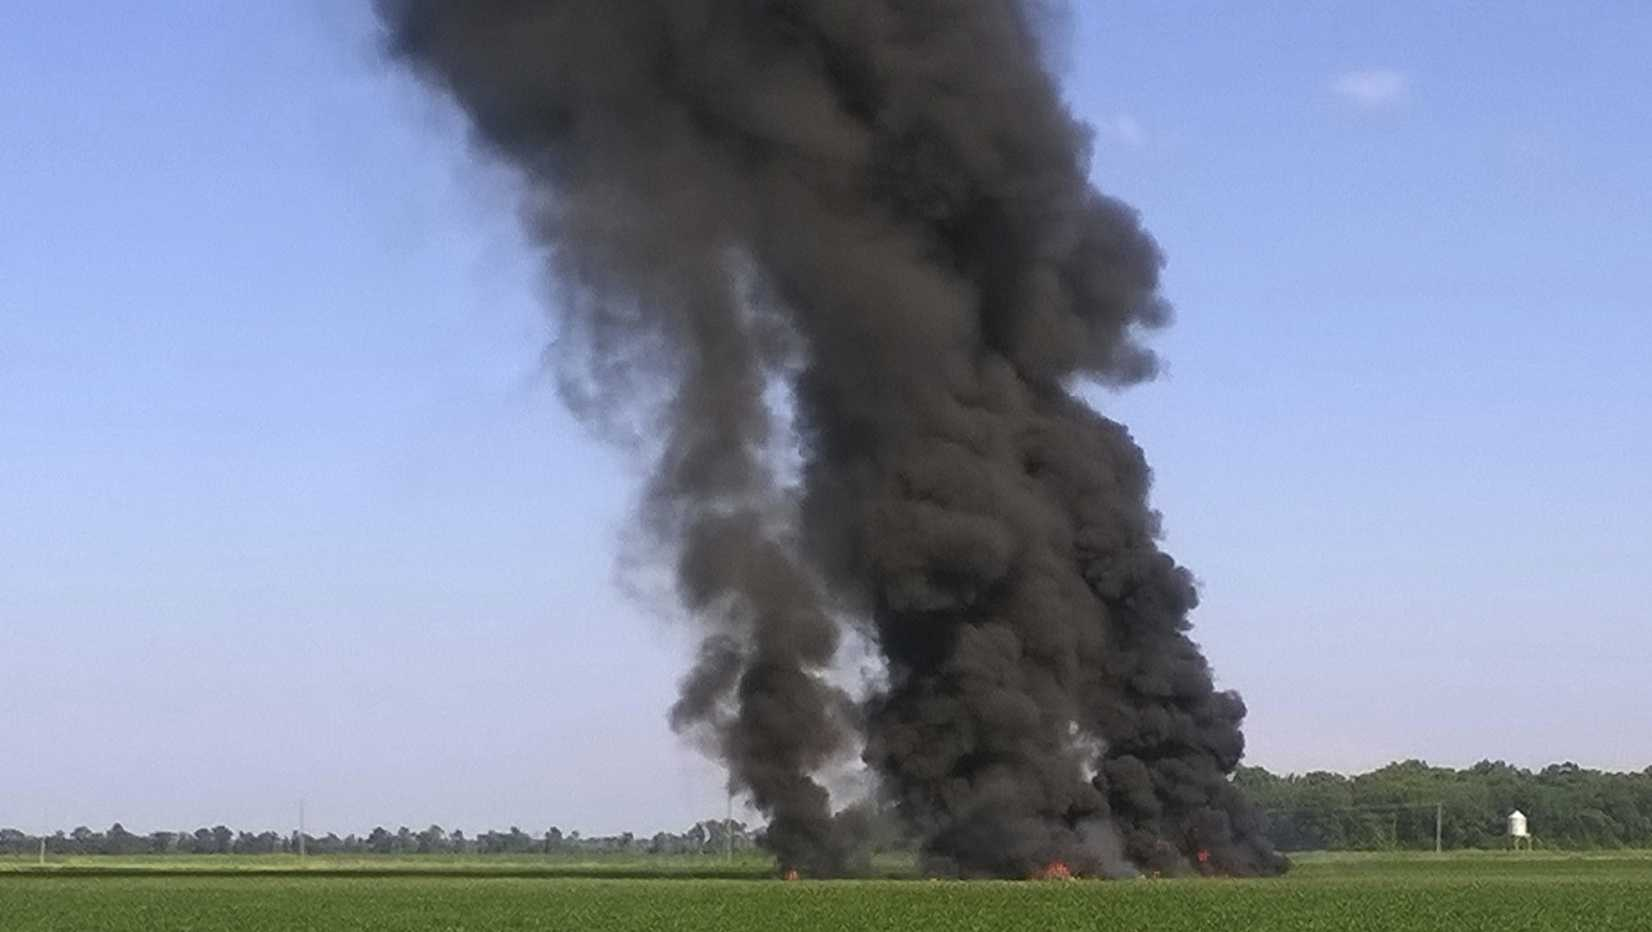 In this photo provided by Jimmy Taylor, smoke and flames rise into the air after a military transport airplane crashed in a field near Itta Bena, Miss., on the western edge of Leflore County, Monday, July 10, 2017, killing several.